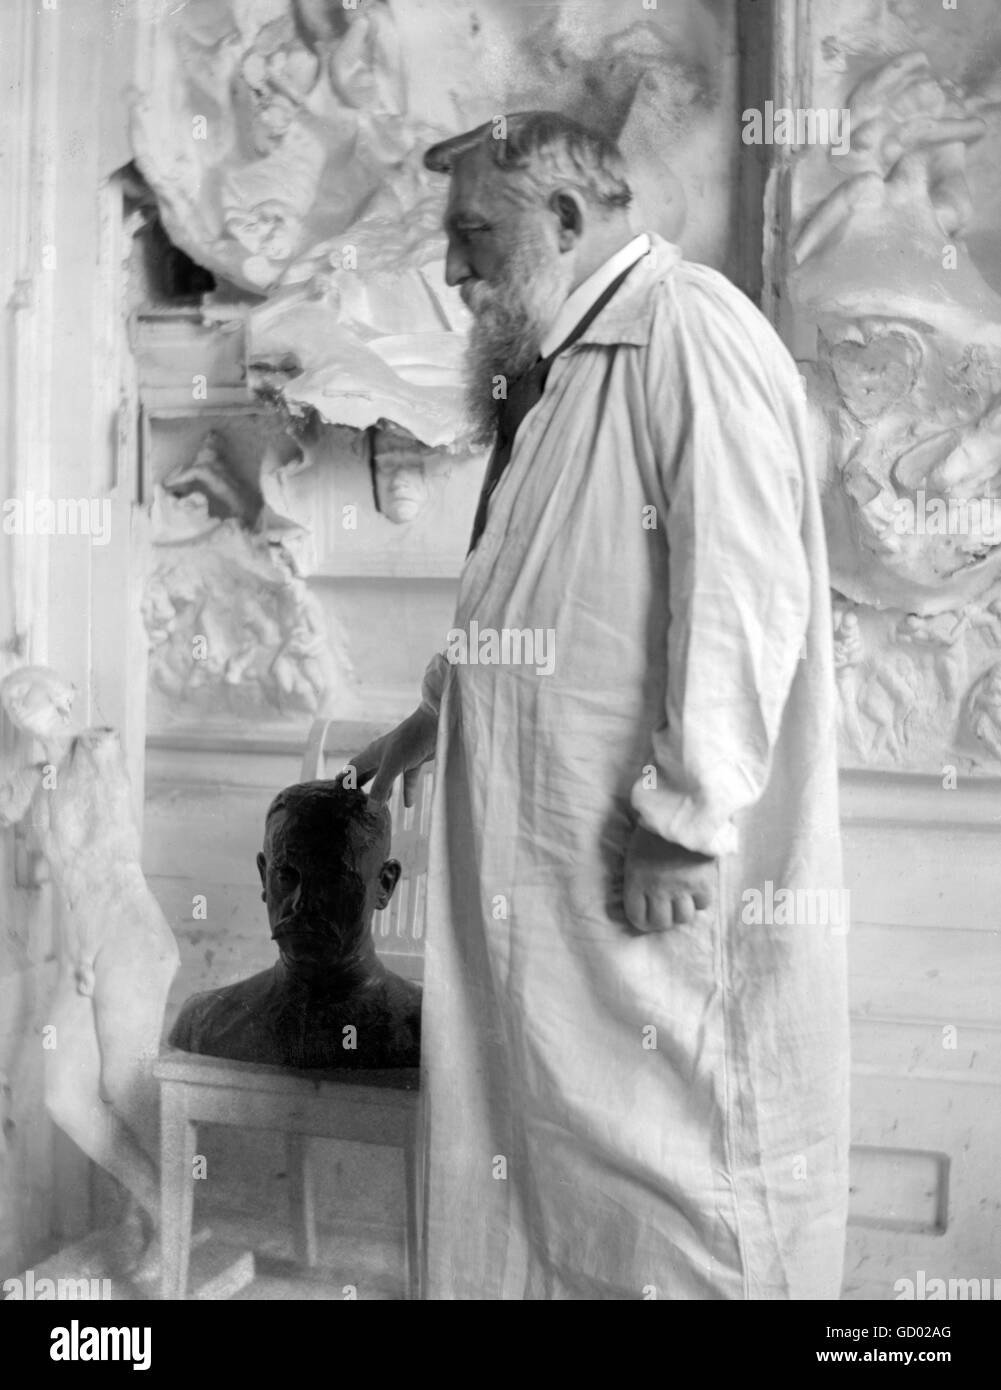 Auguse Rodin. Portrait of the French sculptor Auguste Rodin (François Auguste René Rodin: 1840-1917) by - Stock Image